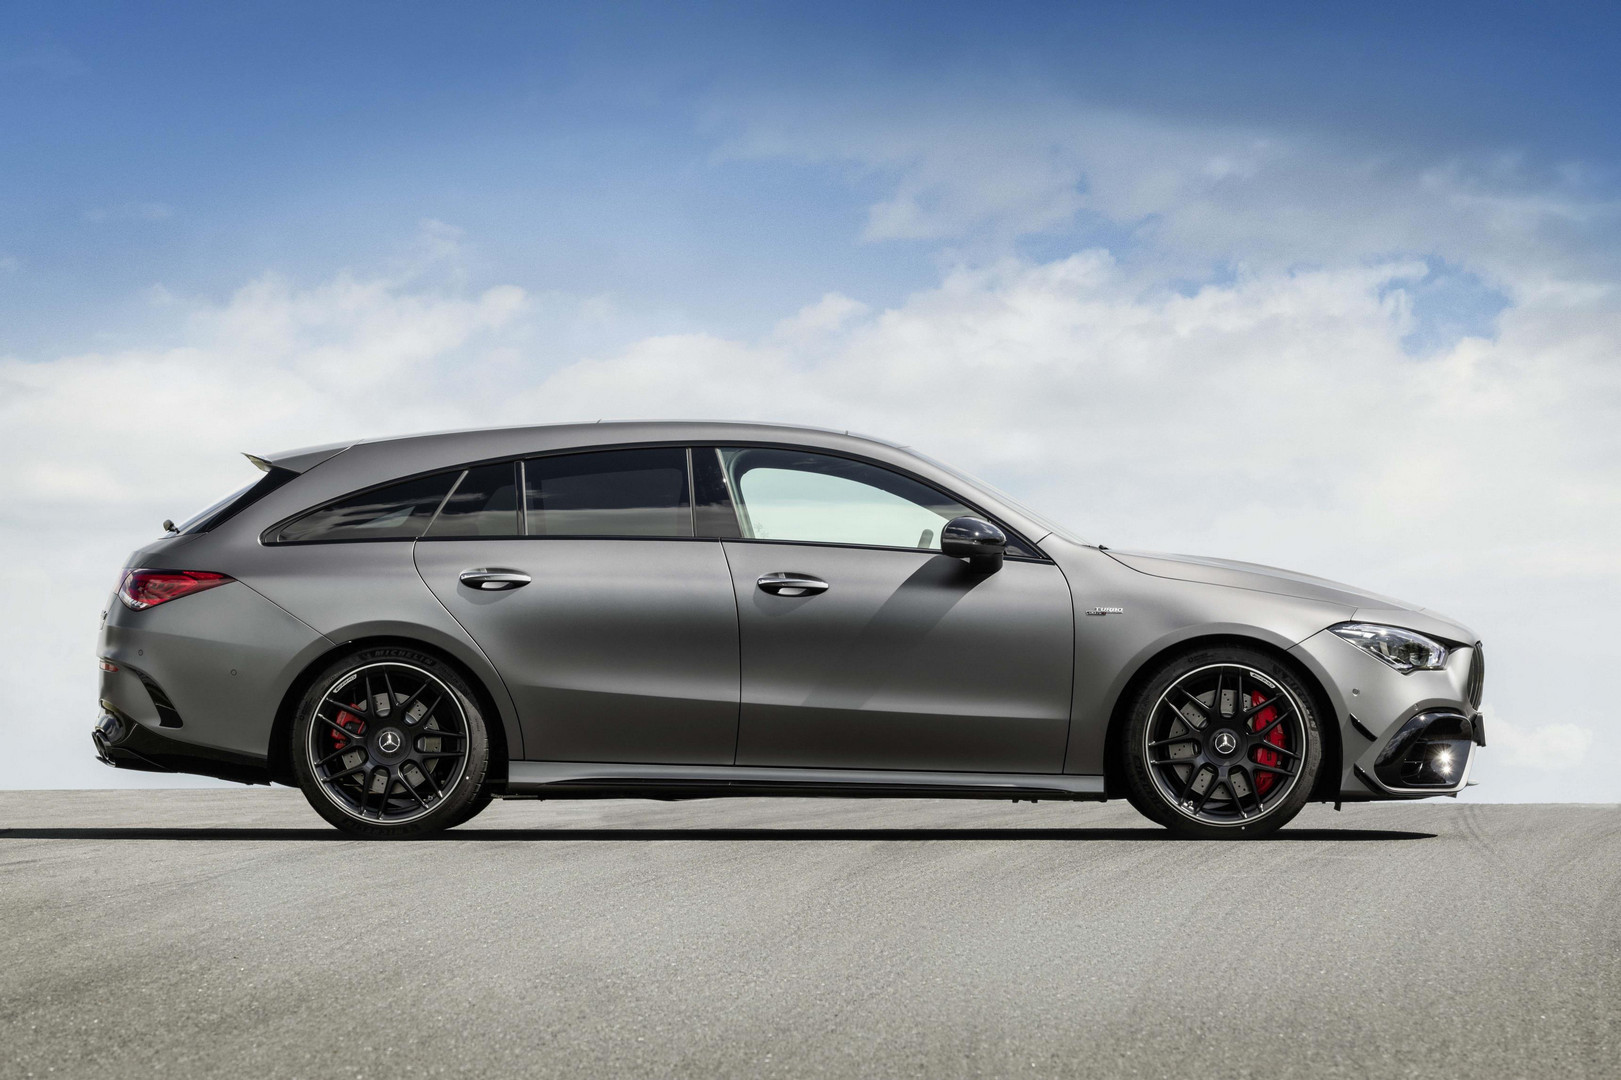 Mercedes-AMG CLA 45 S Shooting Brake Length